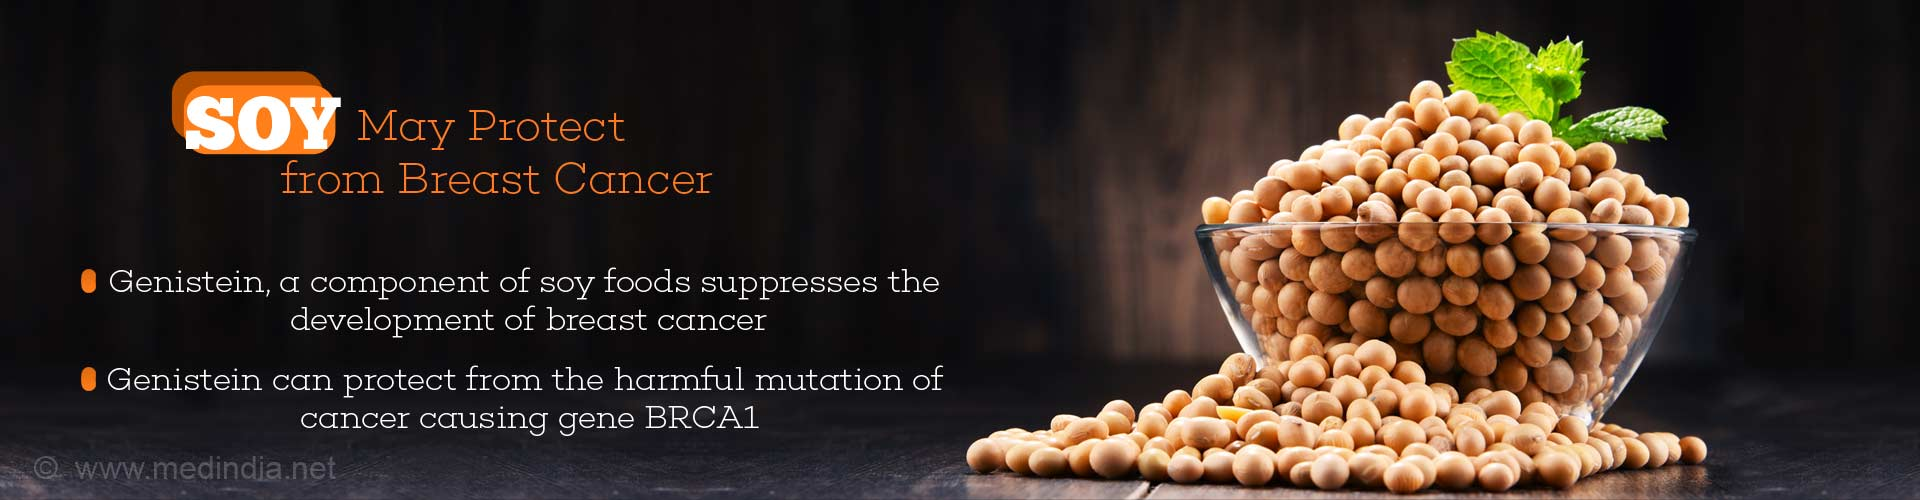 Soy may protect from breast cancer - genistein, a component of soy foods suppresses the development of breast cancer - genistein can protect from the harmful mutation of cancer causing gene BRCA1